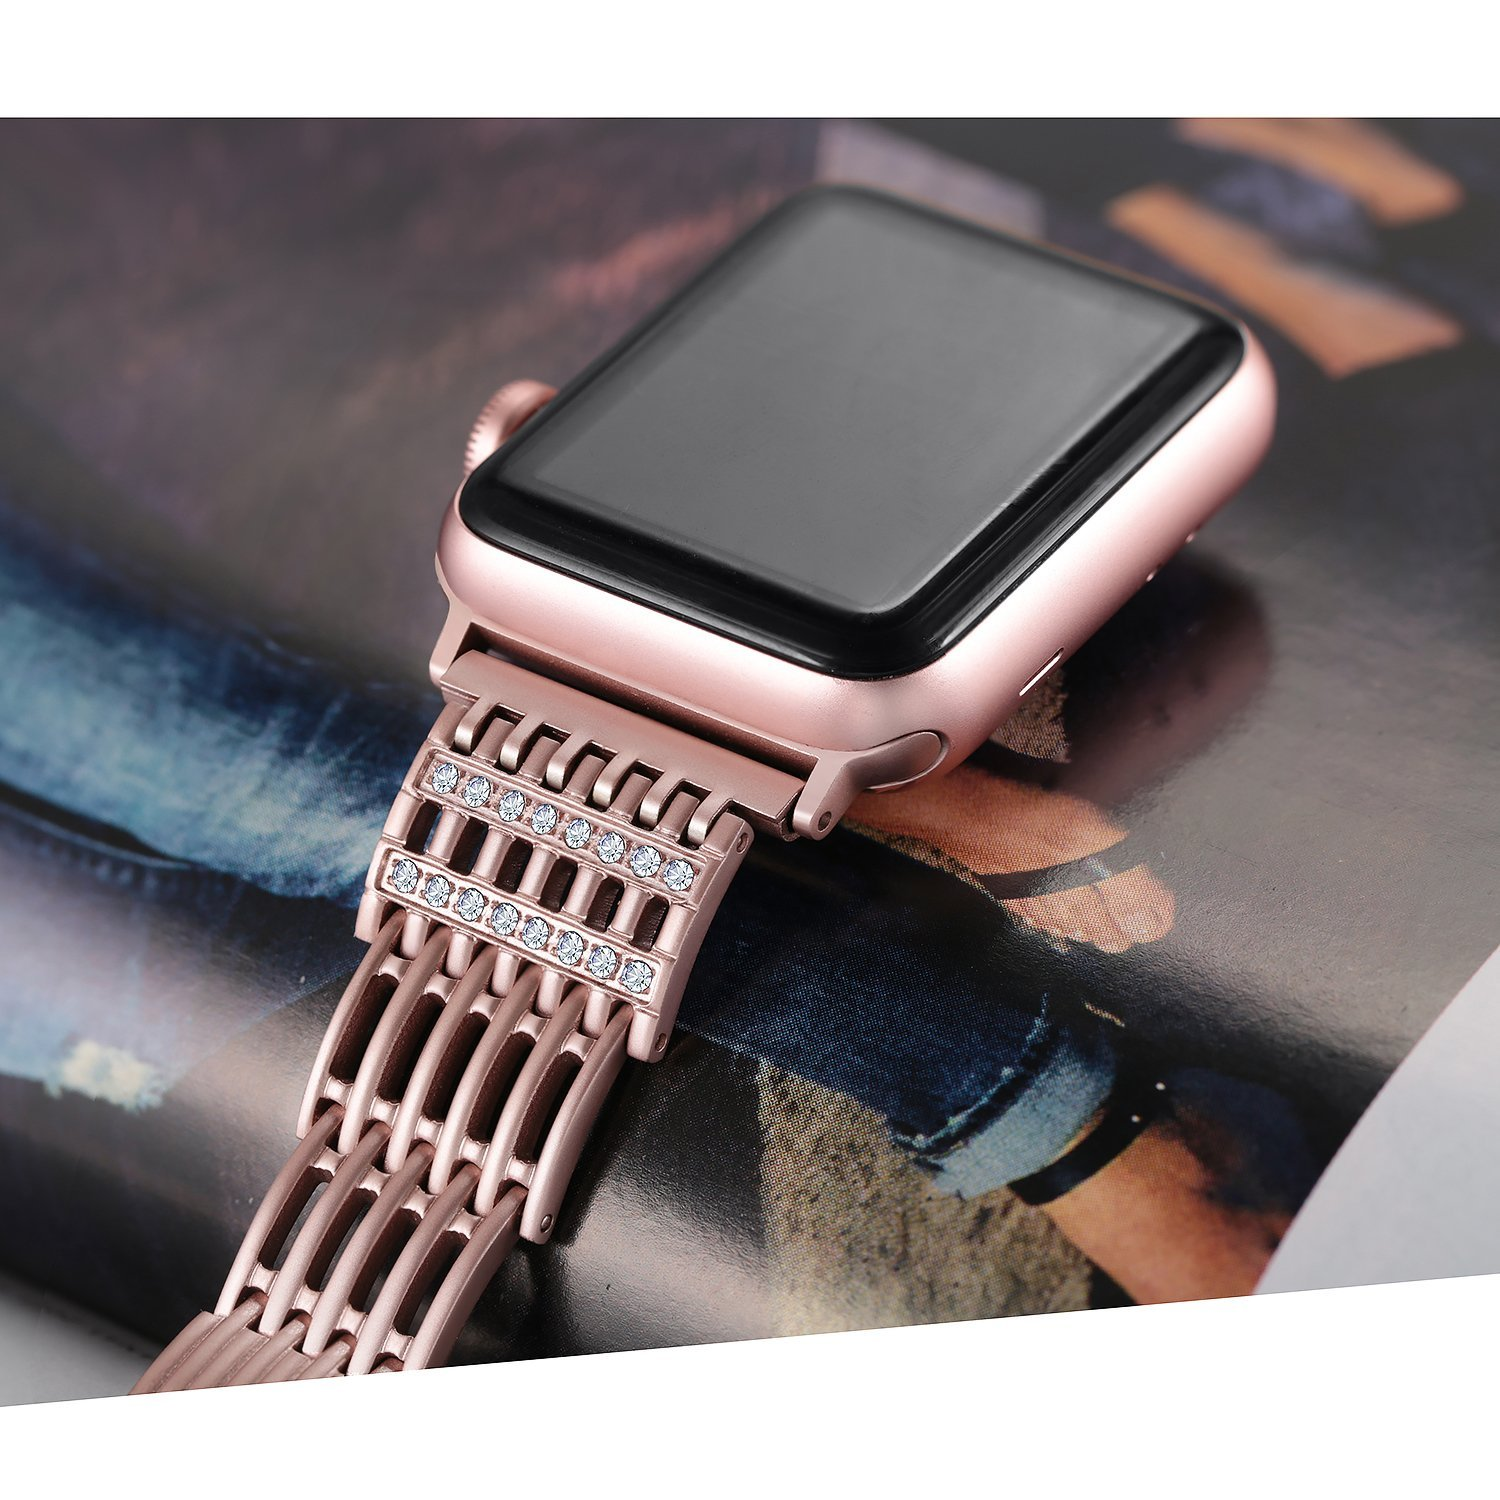 Bling Stainless Steel Metal Watch Band For Apple Watch Band 44Mm/ 40Mm/ 42Mm/ 38Mm Strap Series 1 2 3 4